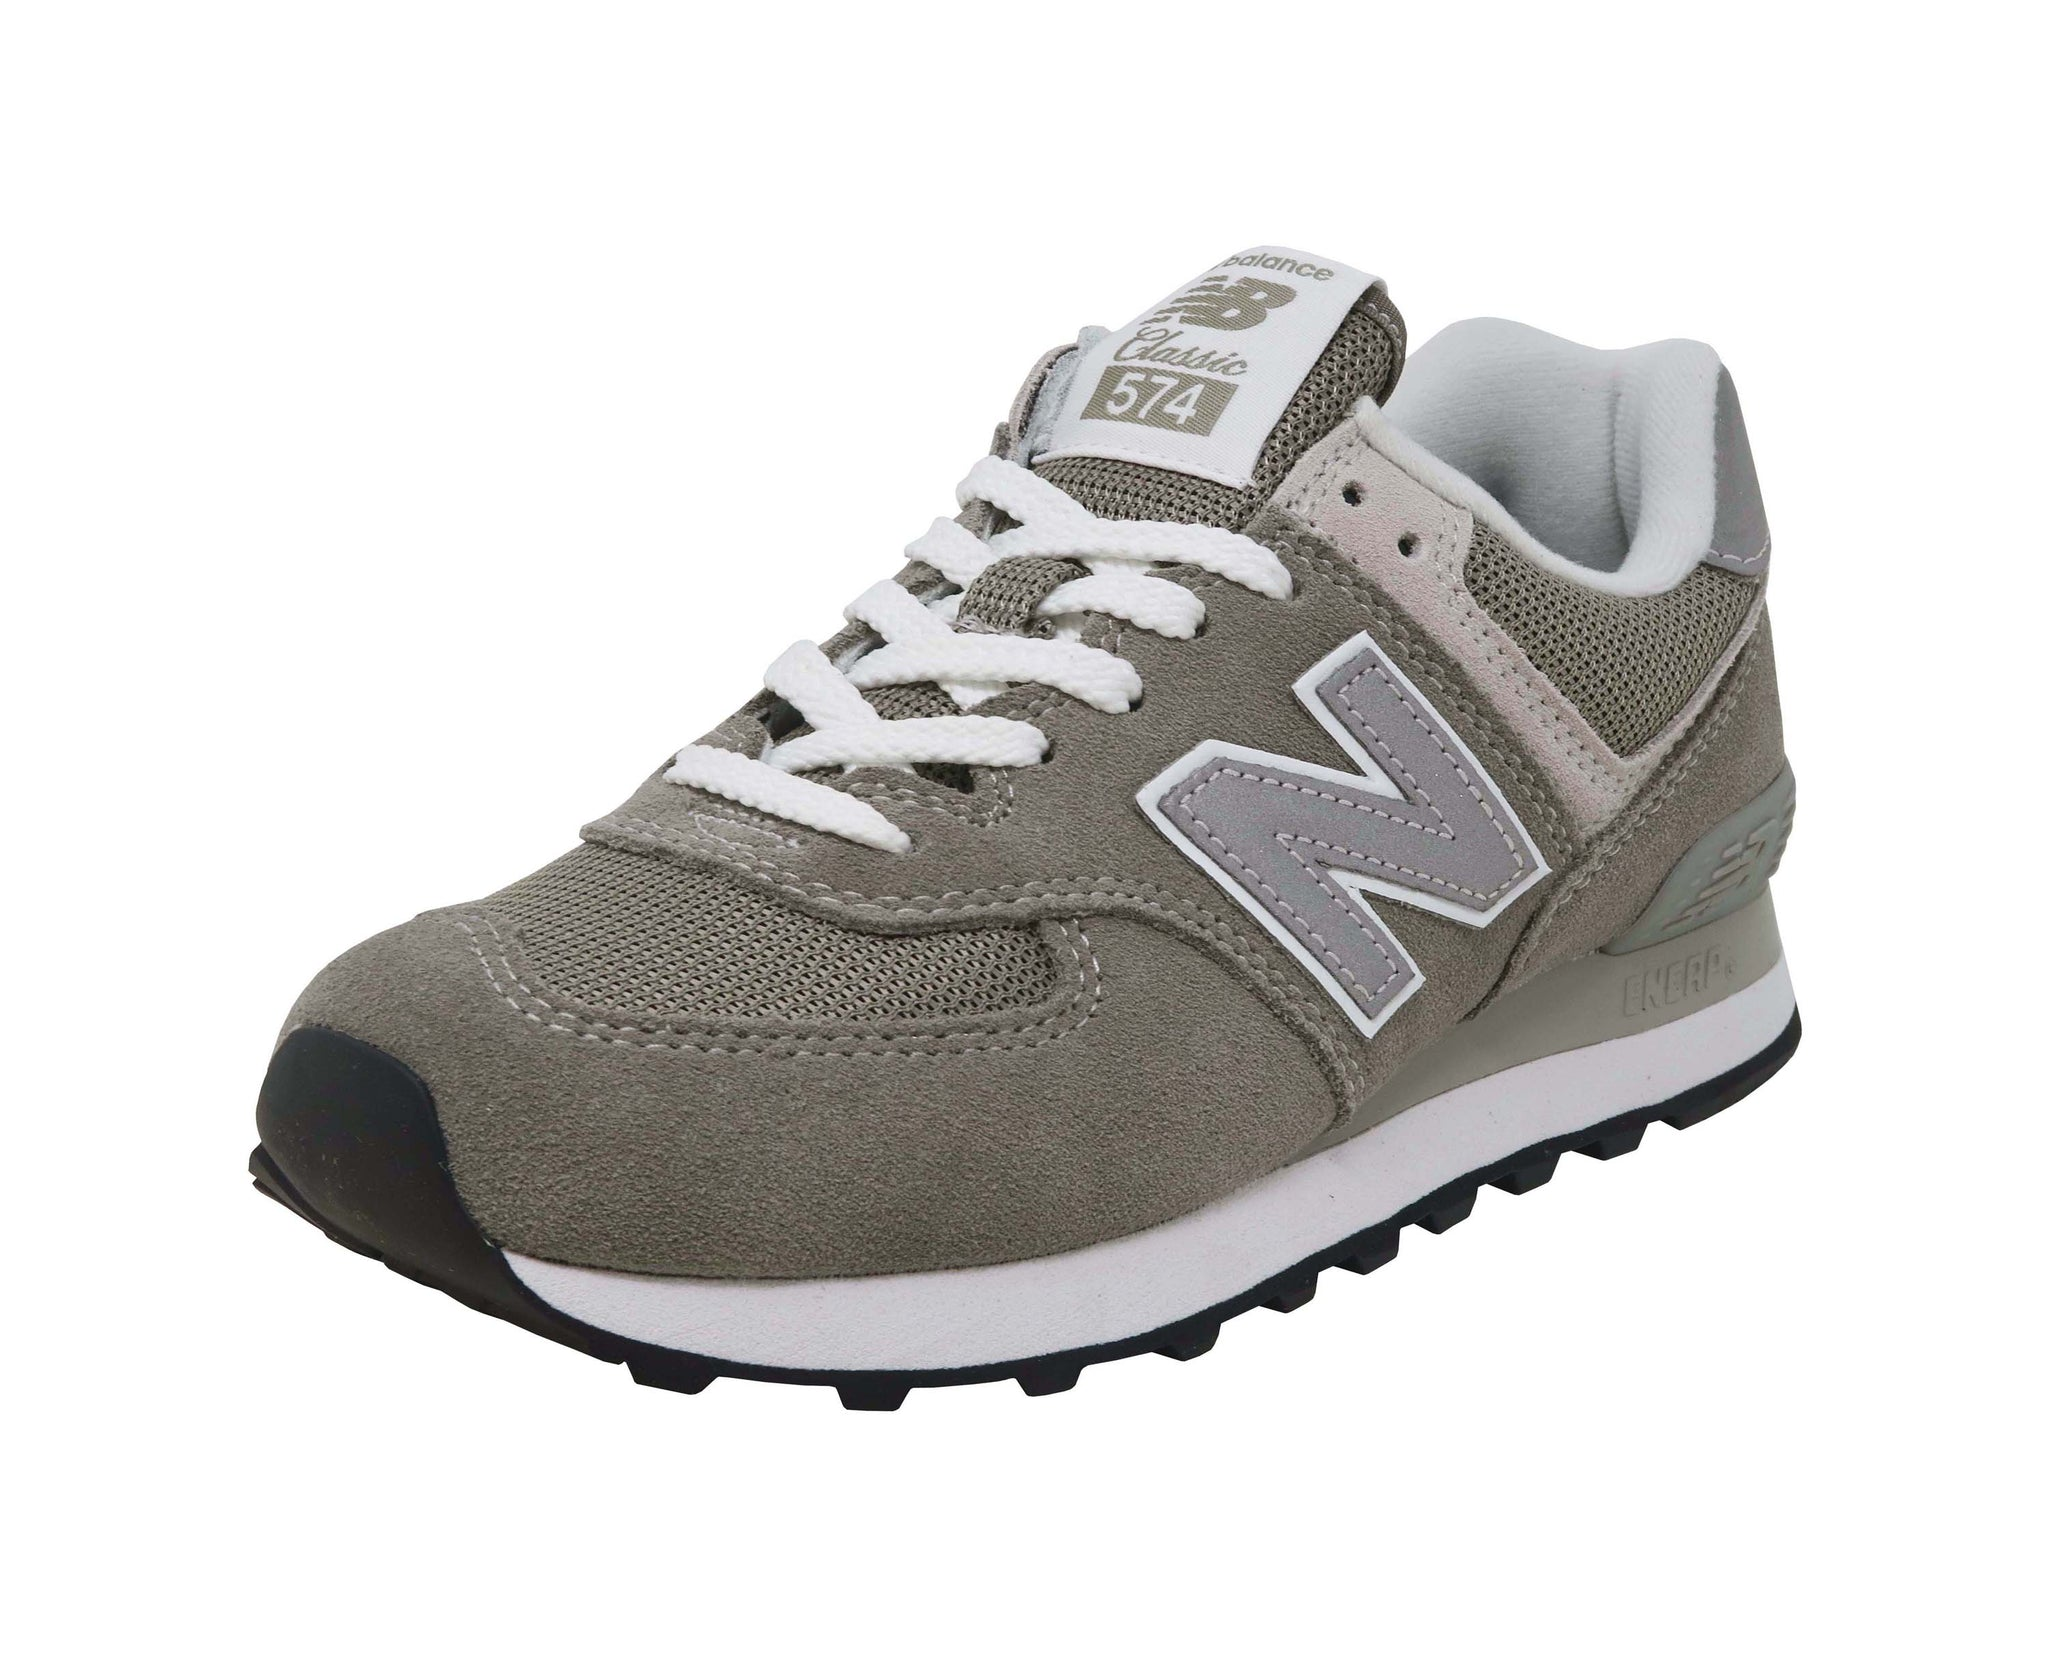 New Balance 574 Grey/White Women's Shoes